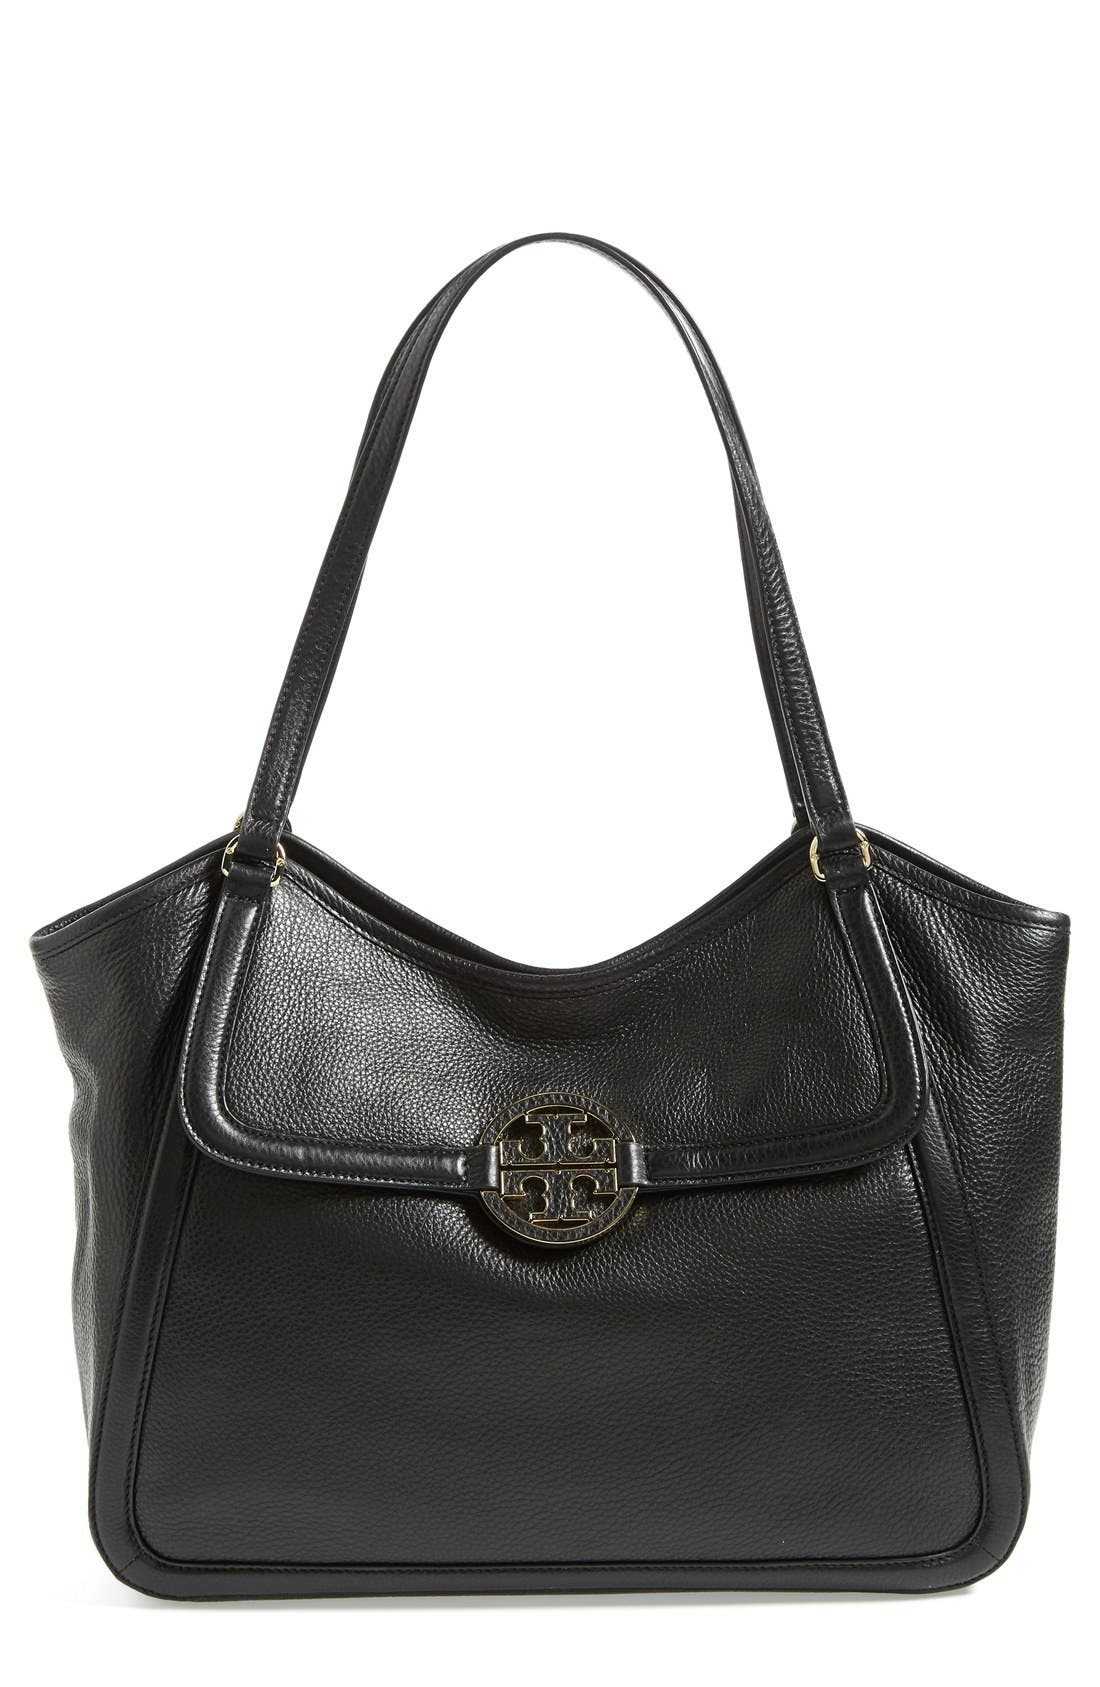 Alternate Image 1 Selected - Tory Burch 'Small Amanda' Satchel